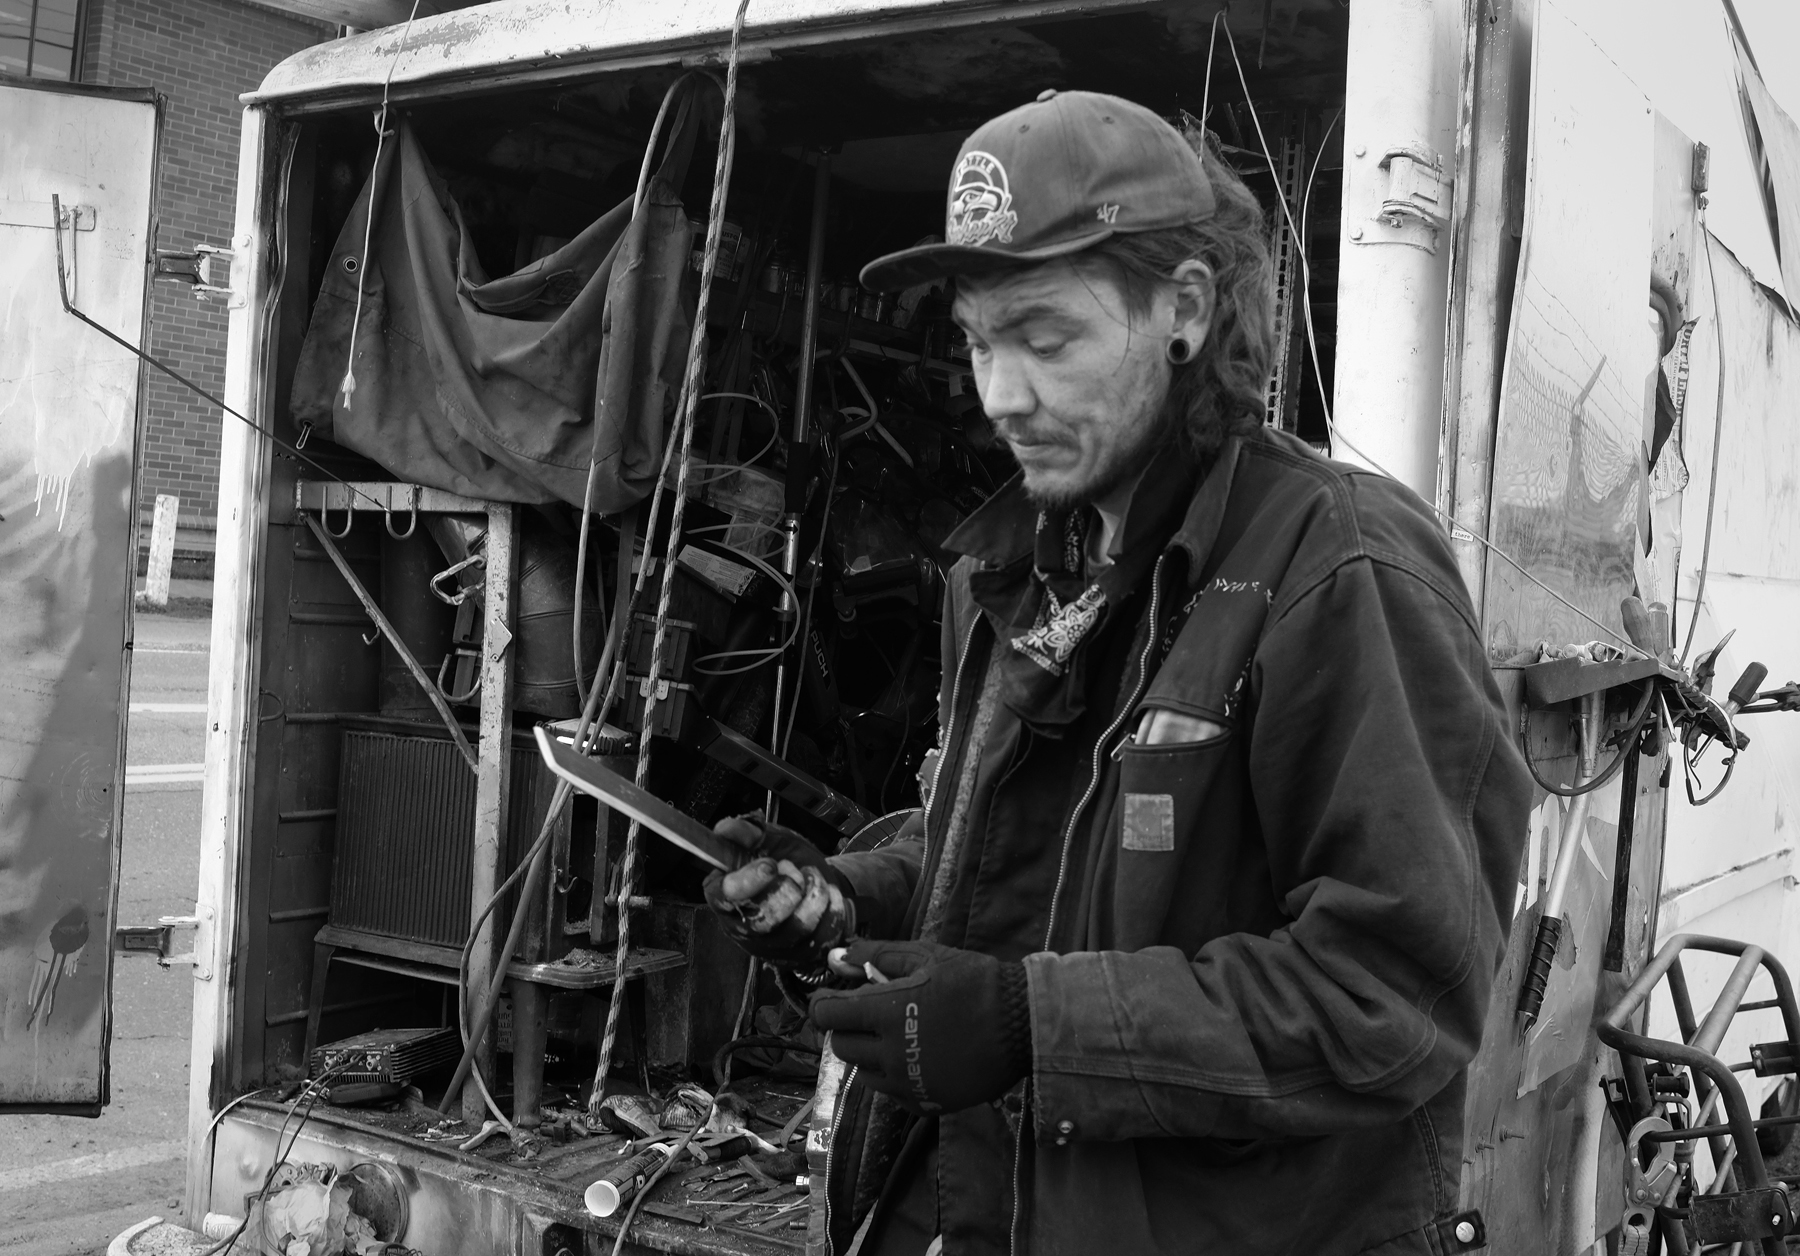 A man wearing a ball cap holding a long bladed knife behind a messy trailer